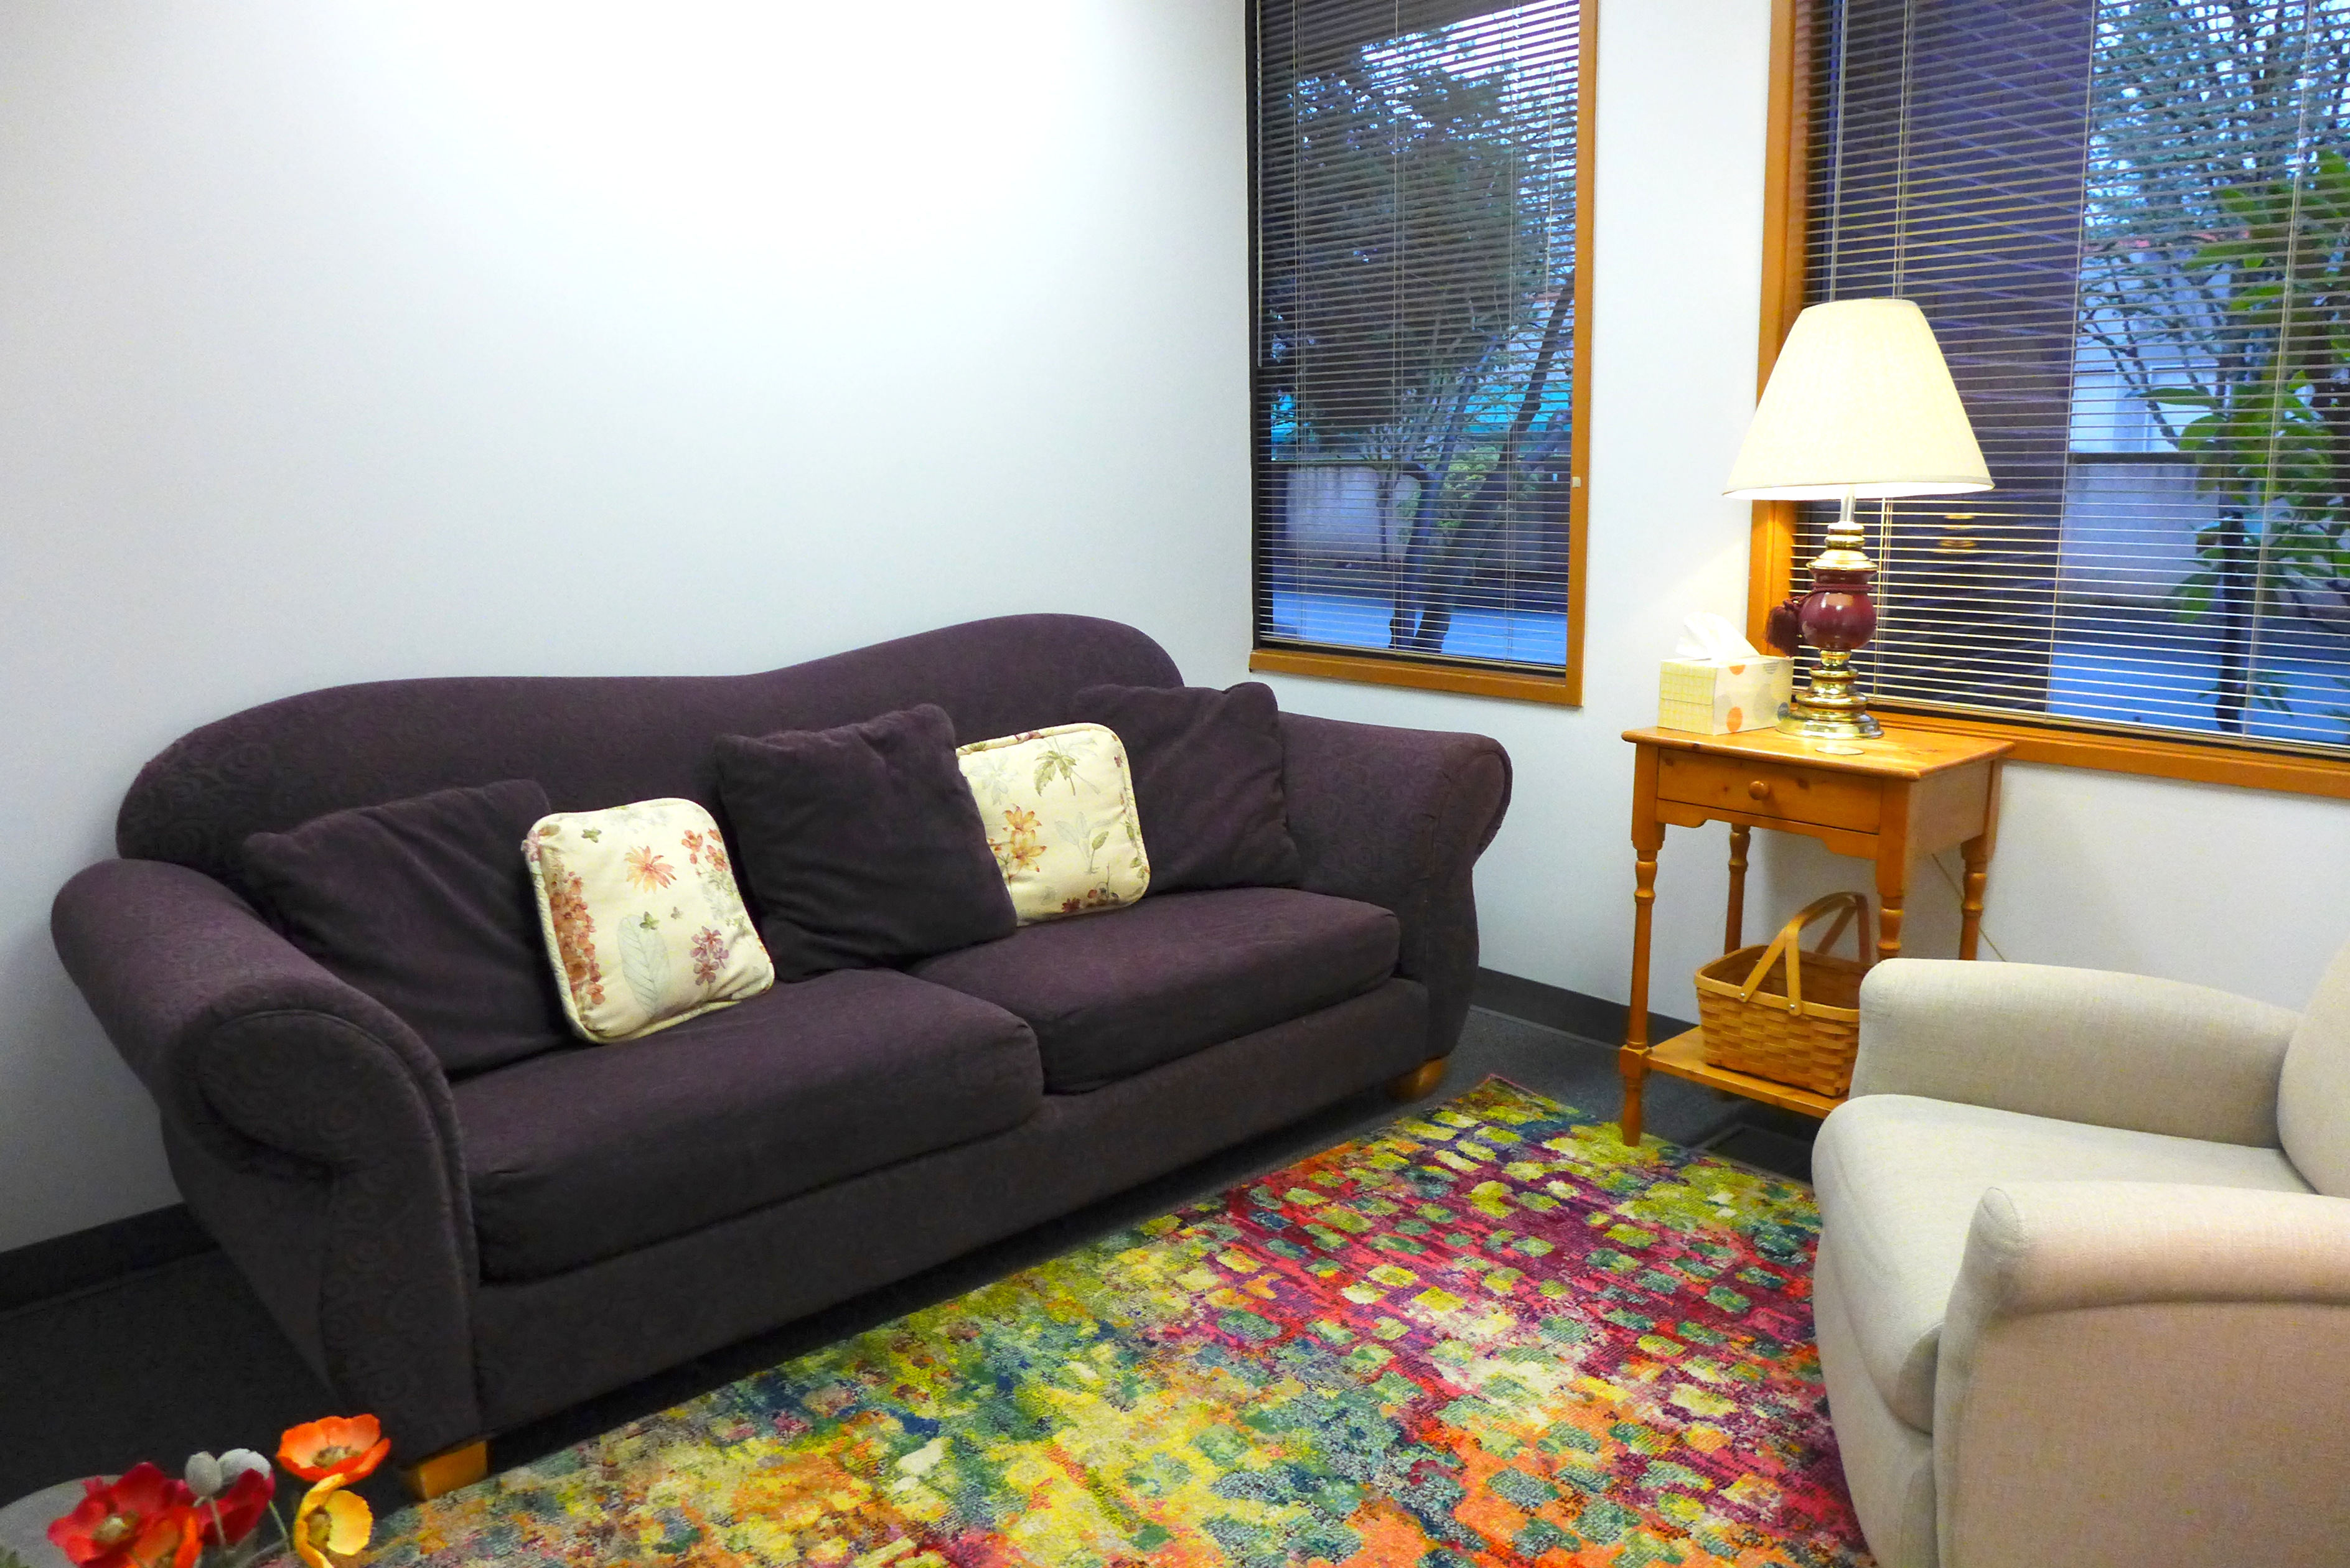 Counseling Room 7